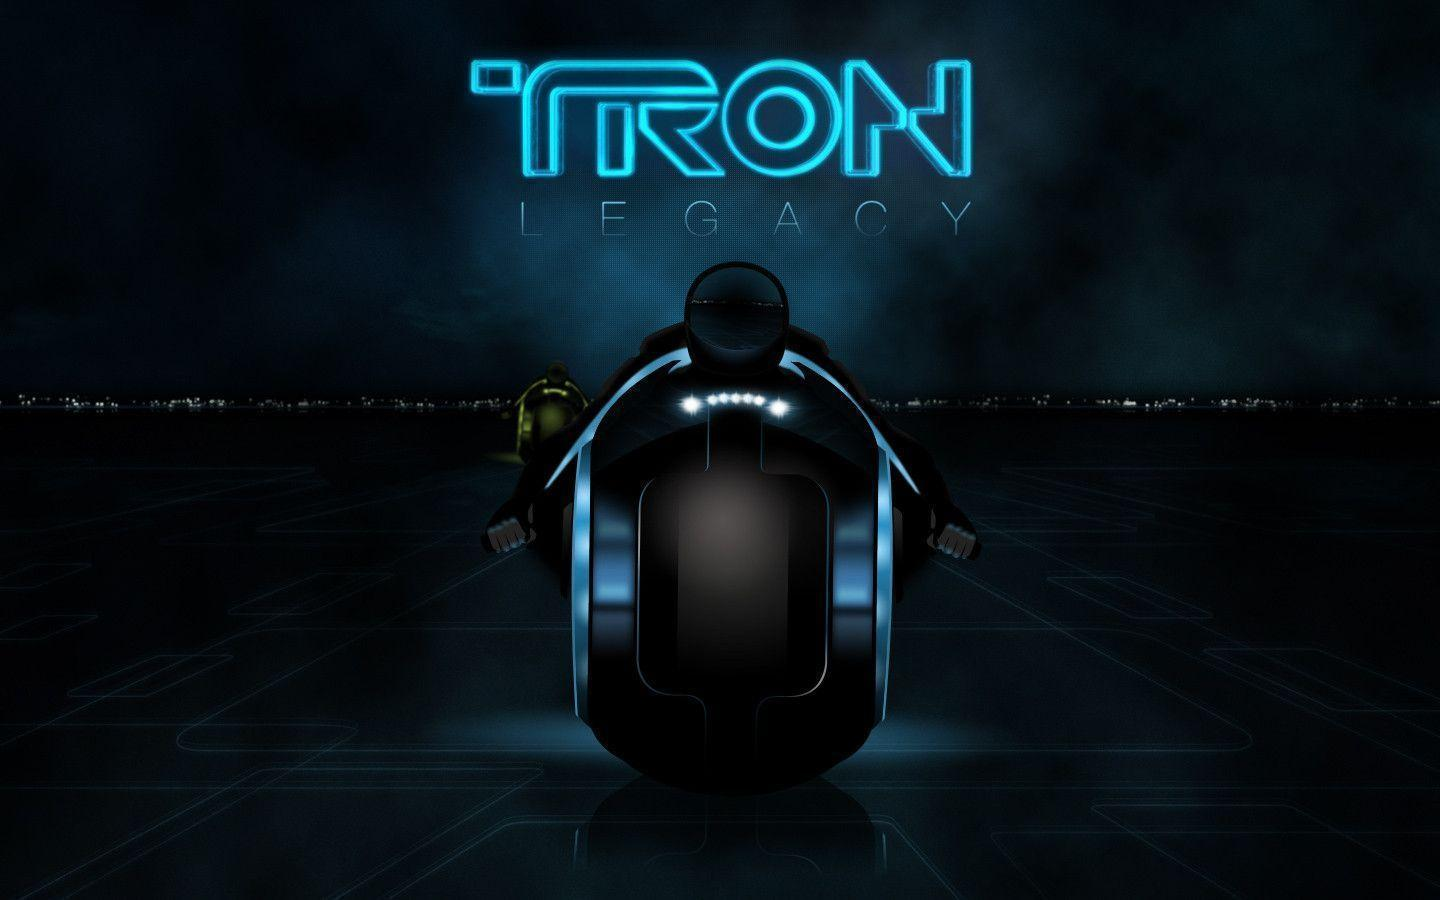 2010 tron evolution wallpapers - photo #34